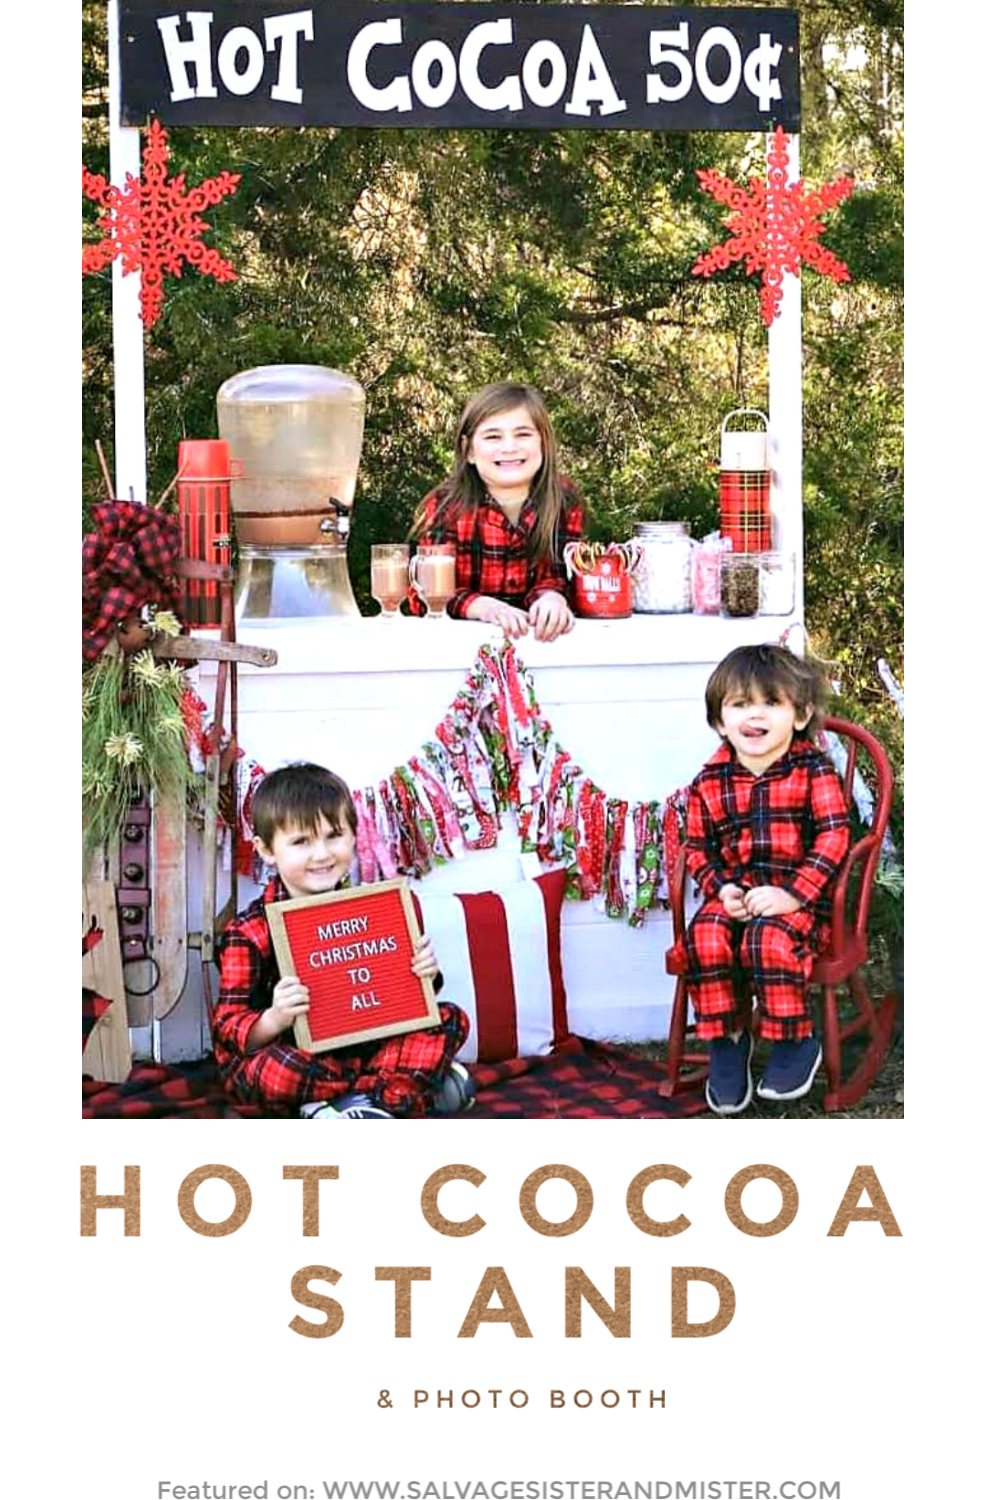 Creating a hot cocoa stand and photo booth for a fun party, family activity, neighborhood event, or a photo area for winter or holiday pictures. This fun station was made using items on hand and/or thrifted items. A vintage vibe with plaid and buffalo check really makes it fun. Get the details of this feature on salvagesisterandmister.com